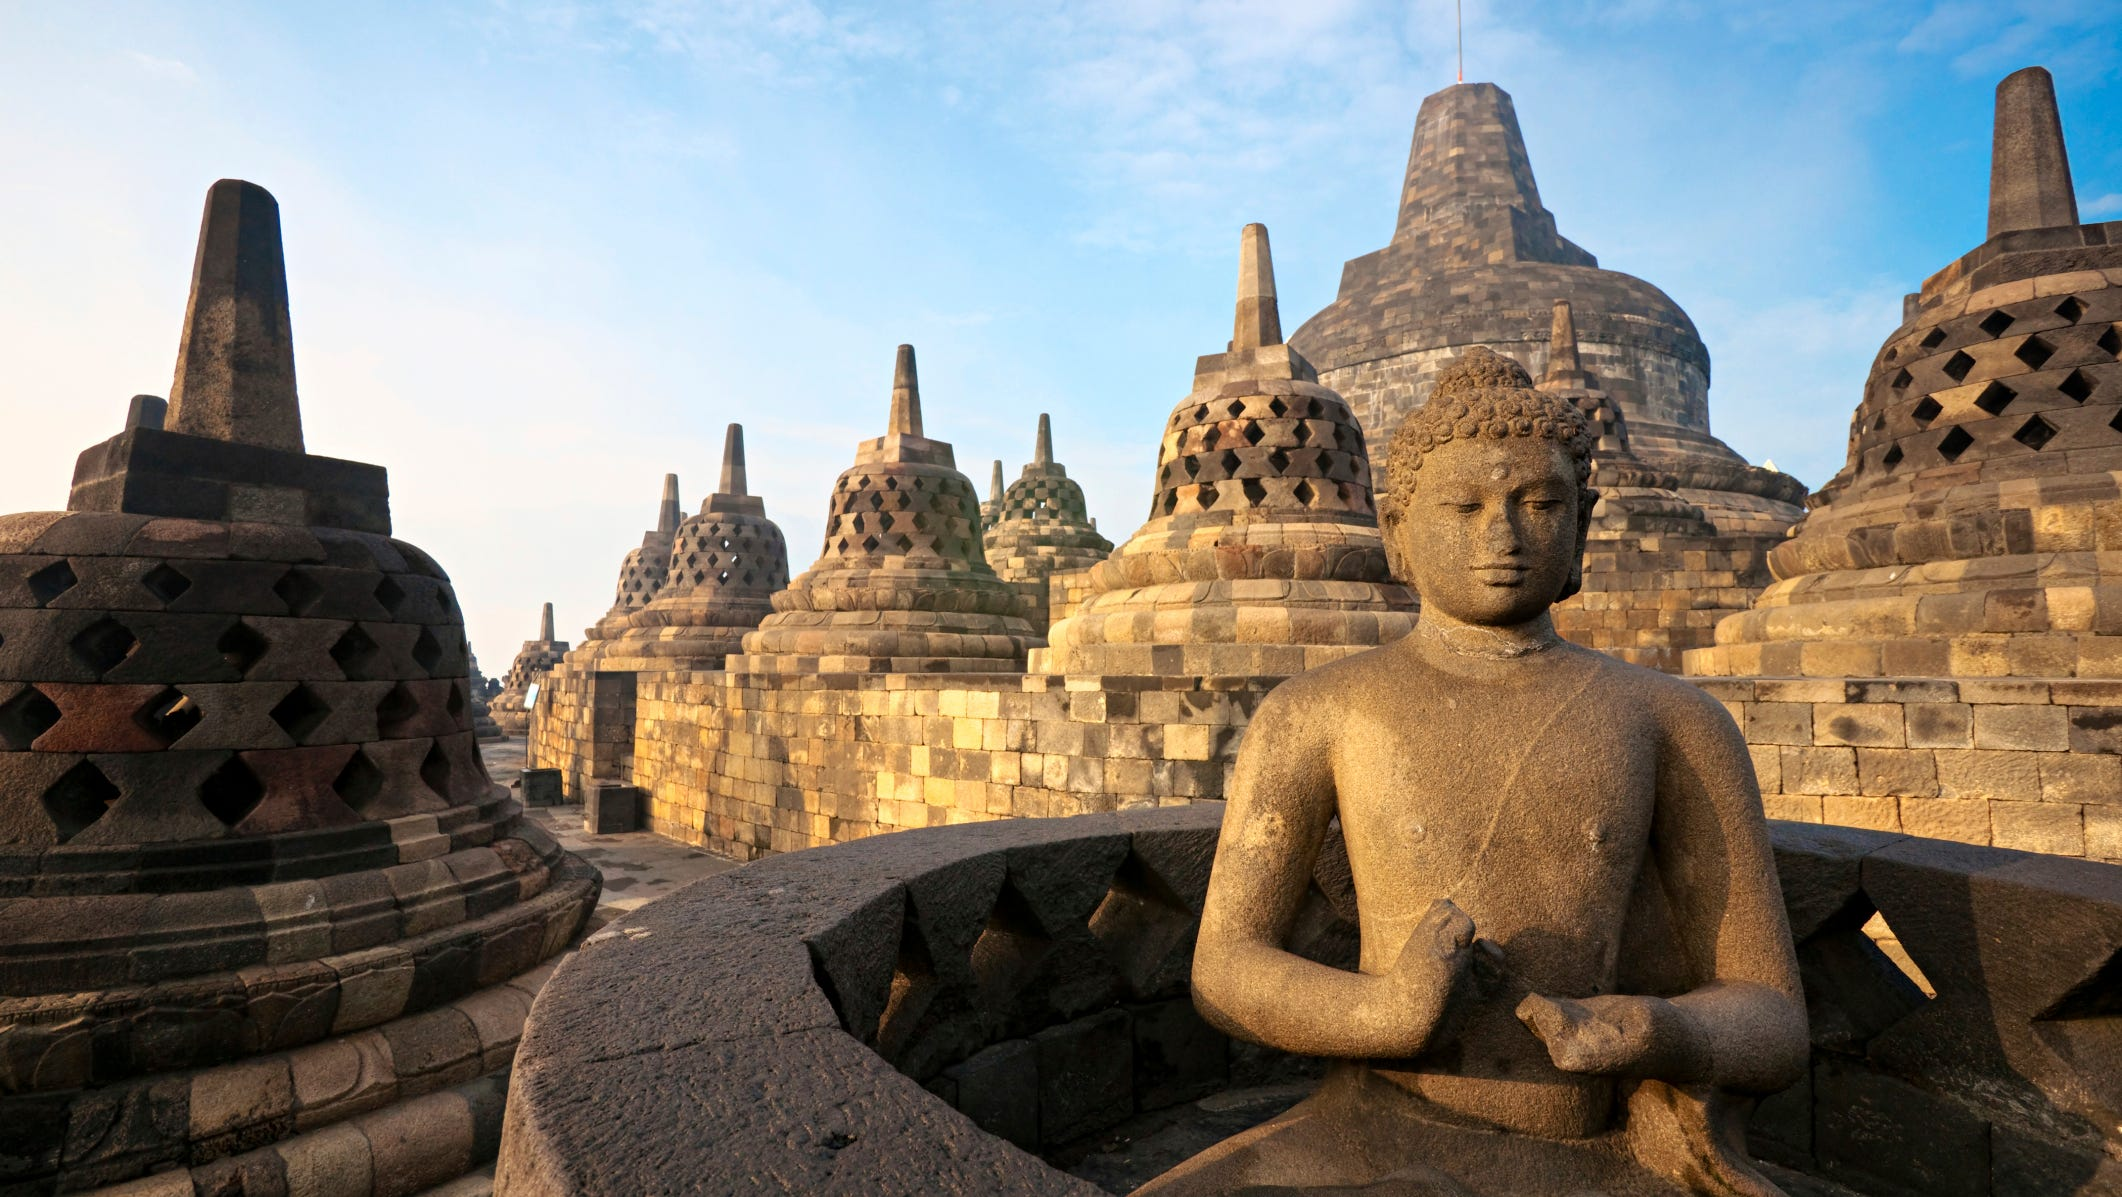 1397674828000 Borobudur Luciano Mortula iStock jpg?width=2122&height=1197&fit=crop&format=pjpg&auto=webp.'